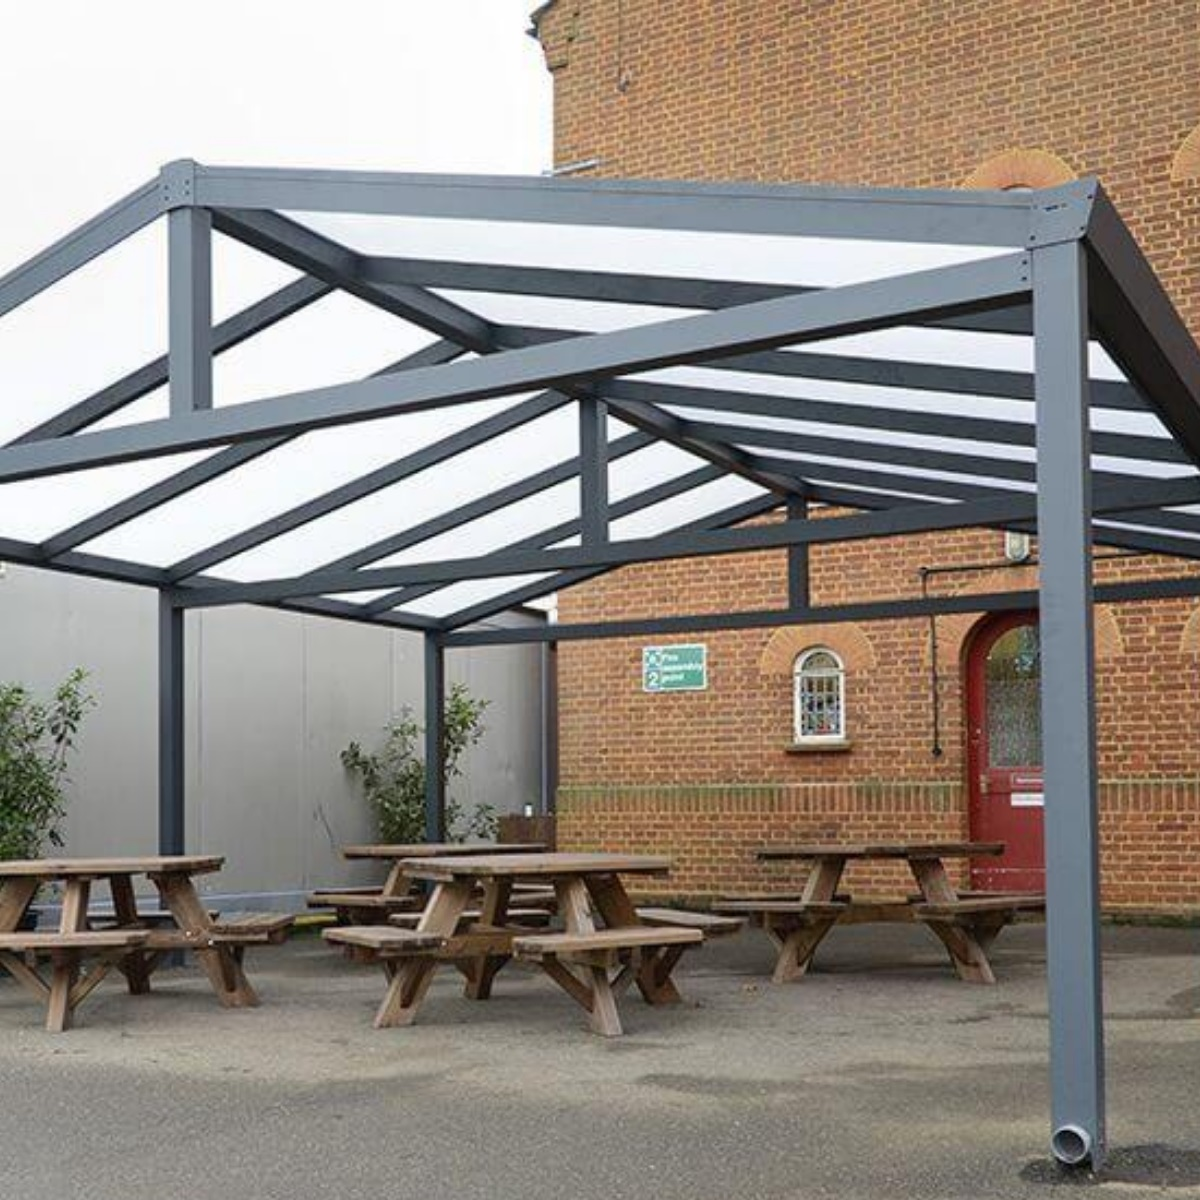 A grey metal framed gazebo with an apex roof made from polycarbonate with picnic tables underneath it